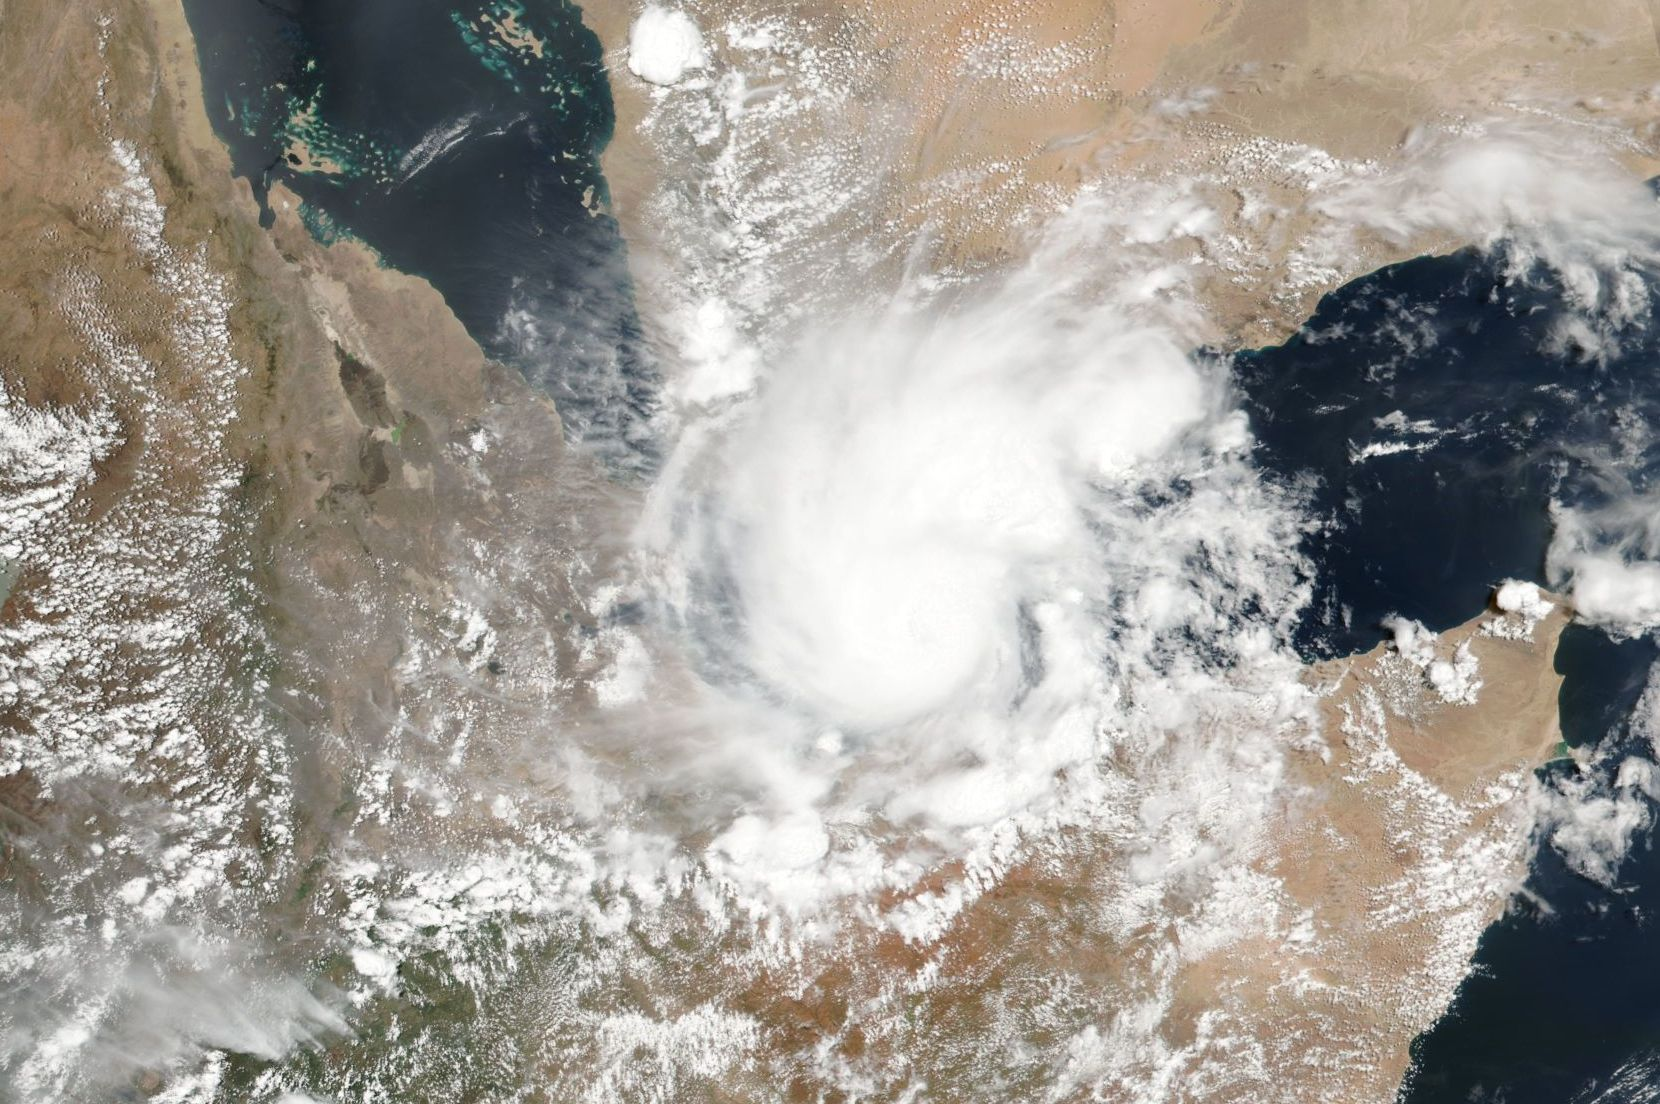 A handout photo made available by the NASA on 19 May 2018 shows a satellite image of tropical storm Sagar developing over the Gulf of Aden, 18 May 2018. The small tropical storm which is very rare to appear in the area is estimated to hit Djibouti and northern Somalia on 19 May 2018.    HANDOUT EDITORIAL USE ONLY/NO SALES